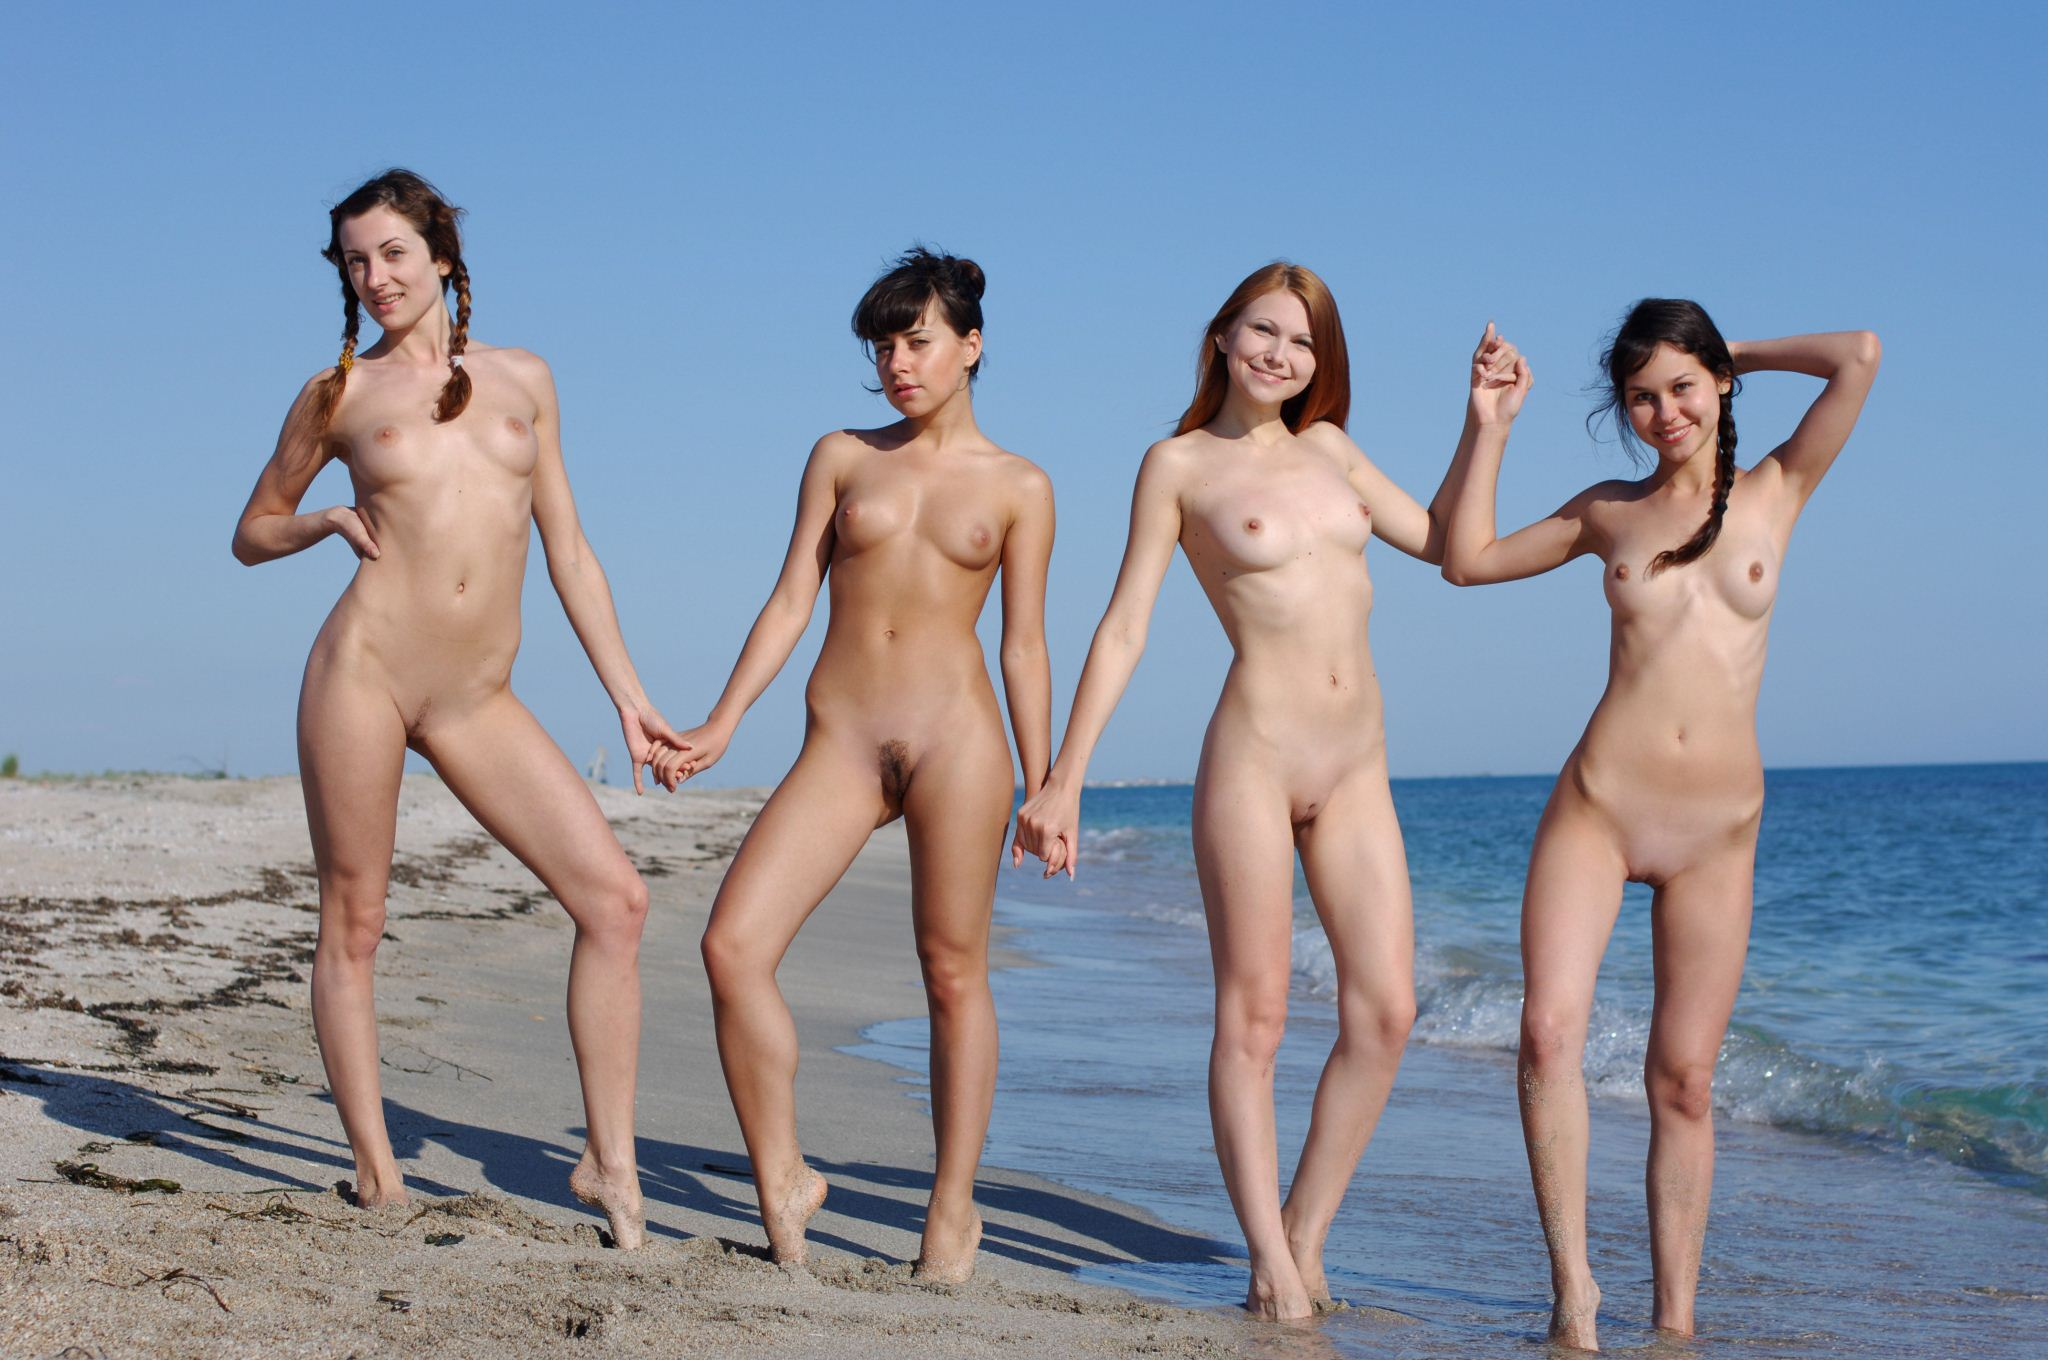 Small virgin nudist